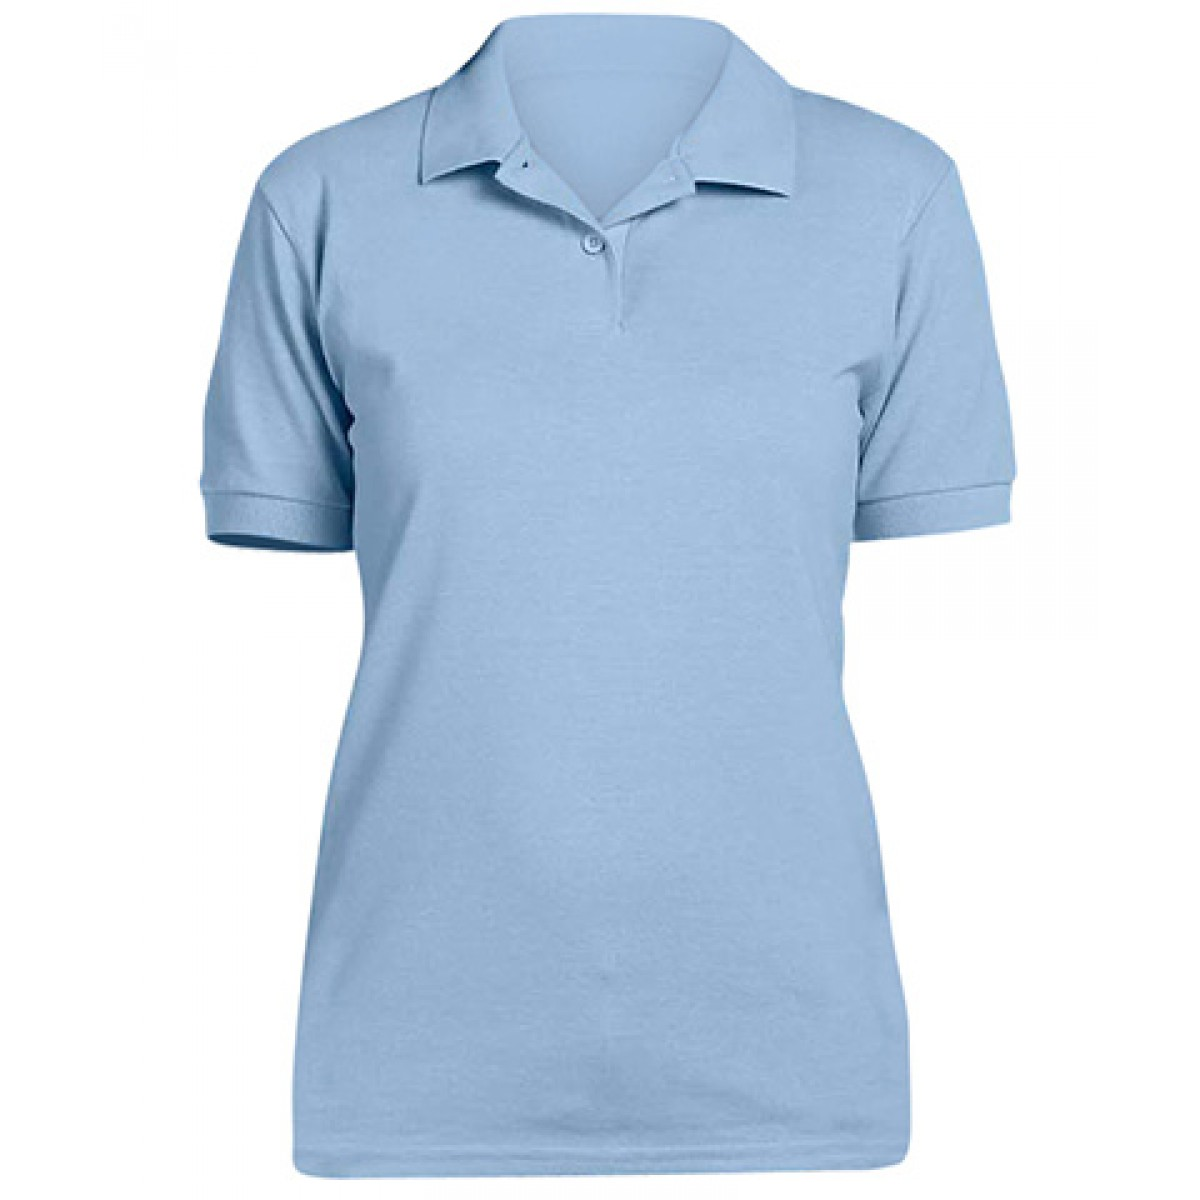 Ladies' 6.5 oz. Piqué Sport Shirt-Blue-L